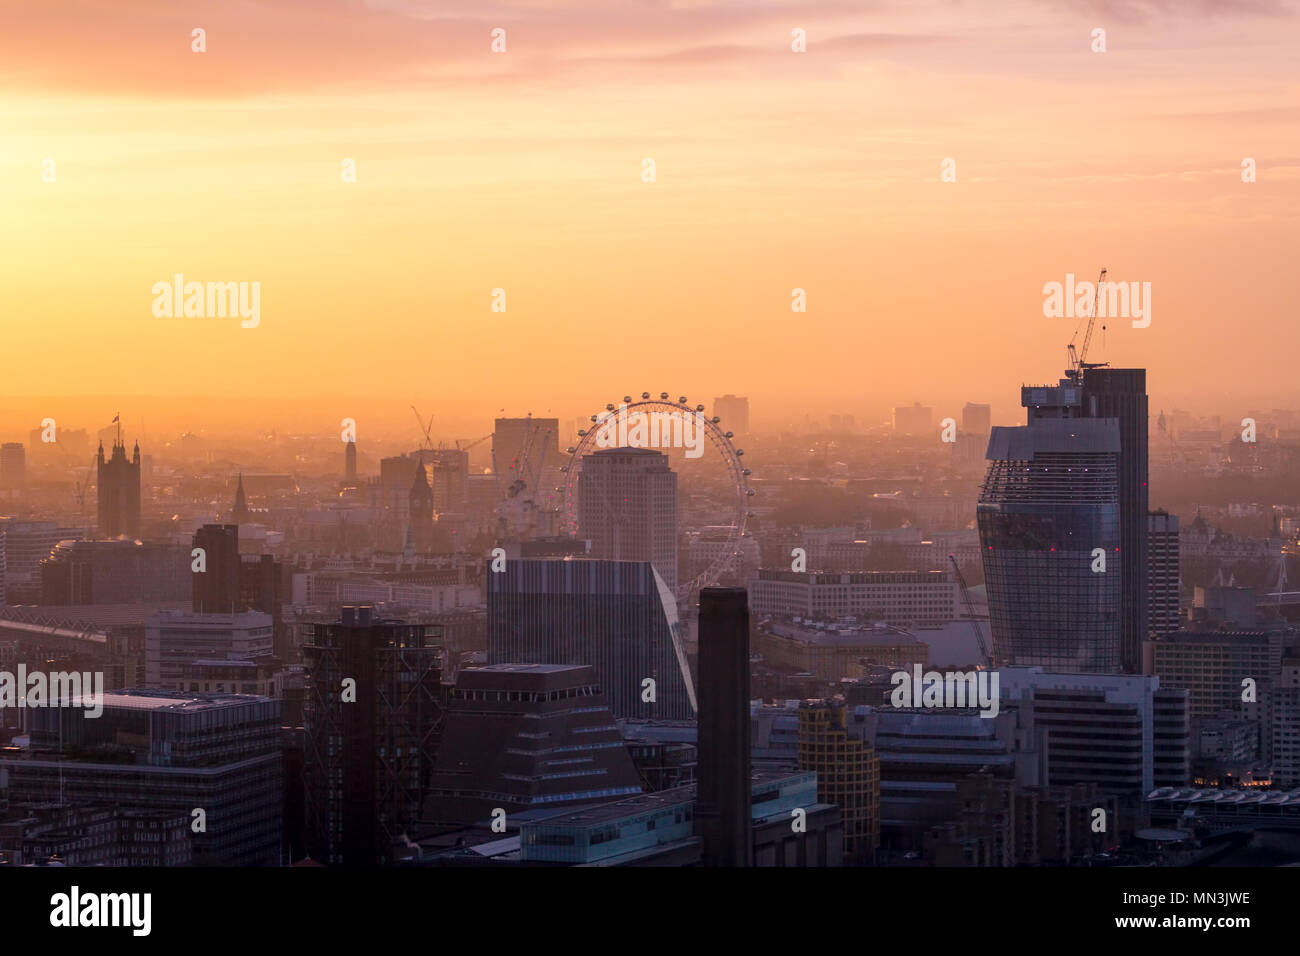 London city skyline.  A cityscape at sunset.  Despite the dreamy look, London suffers from high levels of air pollution, affecting the health of many. - Stock Image